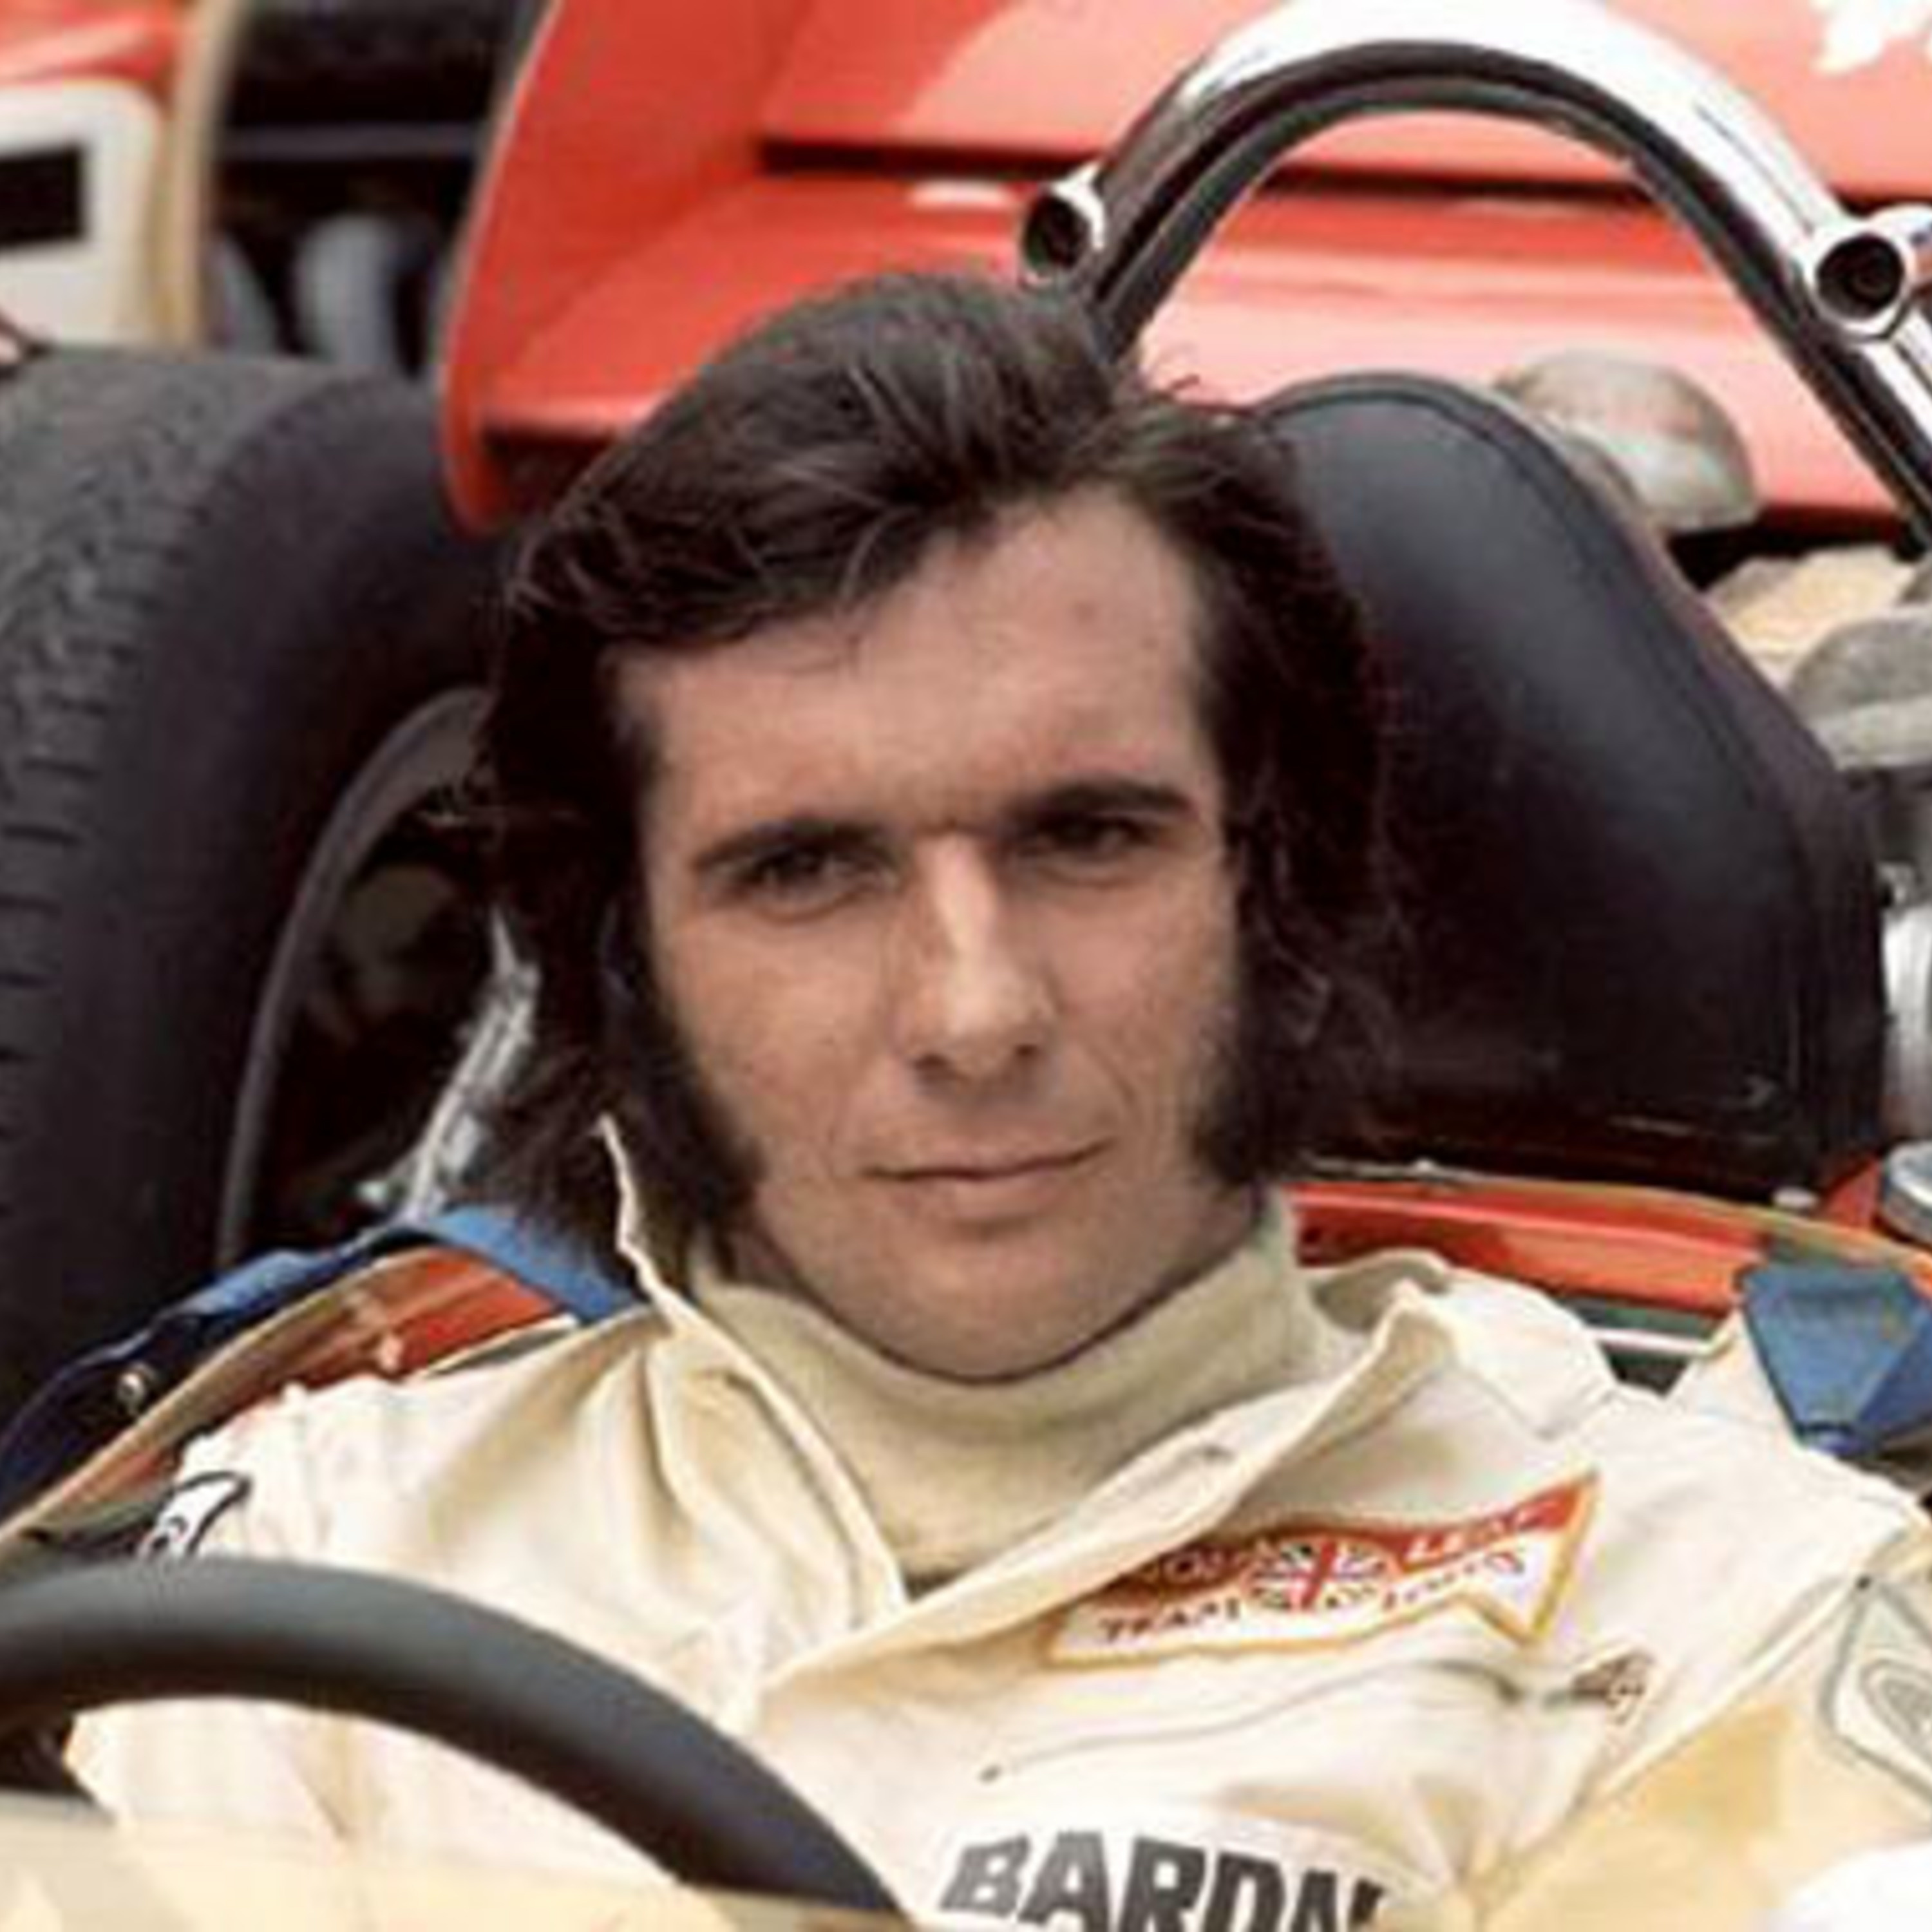 Live from Belle Isle with Emerson Fittipaldi